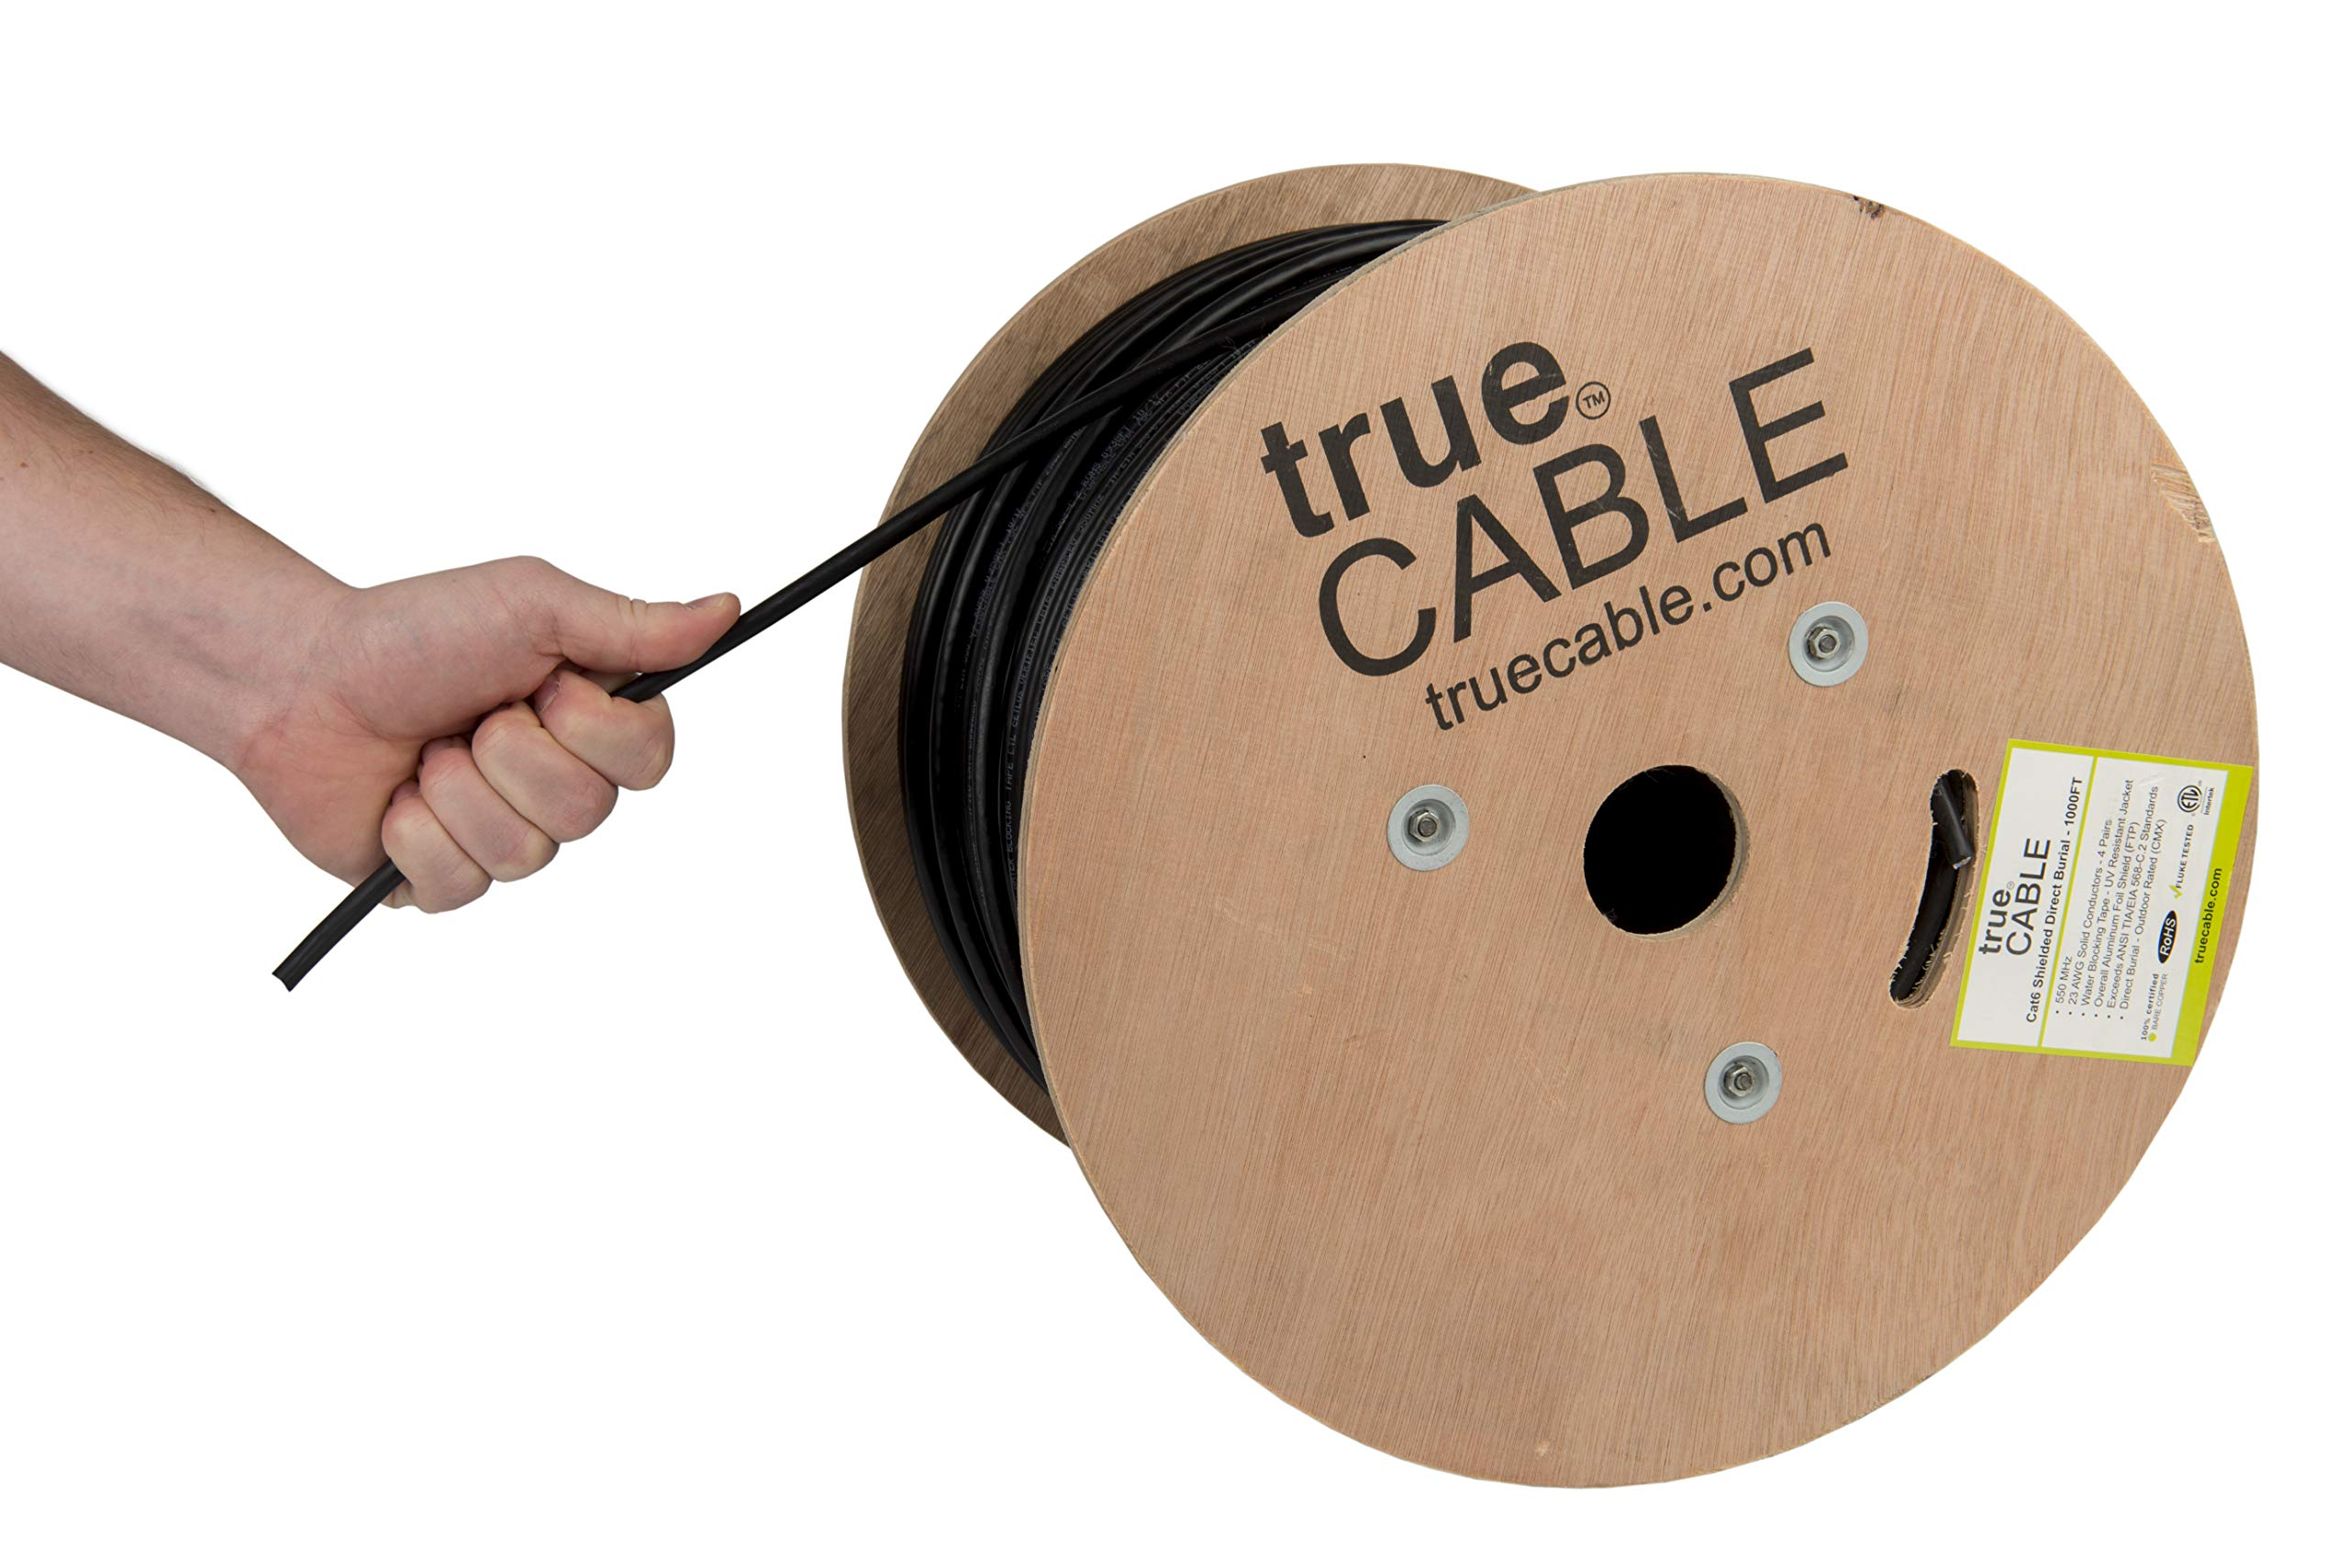 trueCABLE Cat6 Direct Burial, Shielded FTP, 1000ft, Waterproof, Outdoor Rated CMX, Black, 23AWG Solid Bare Copper, 550MHz, ETL Listed, Bulk Ethernet Cable